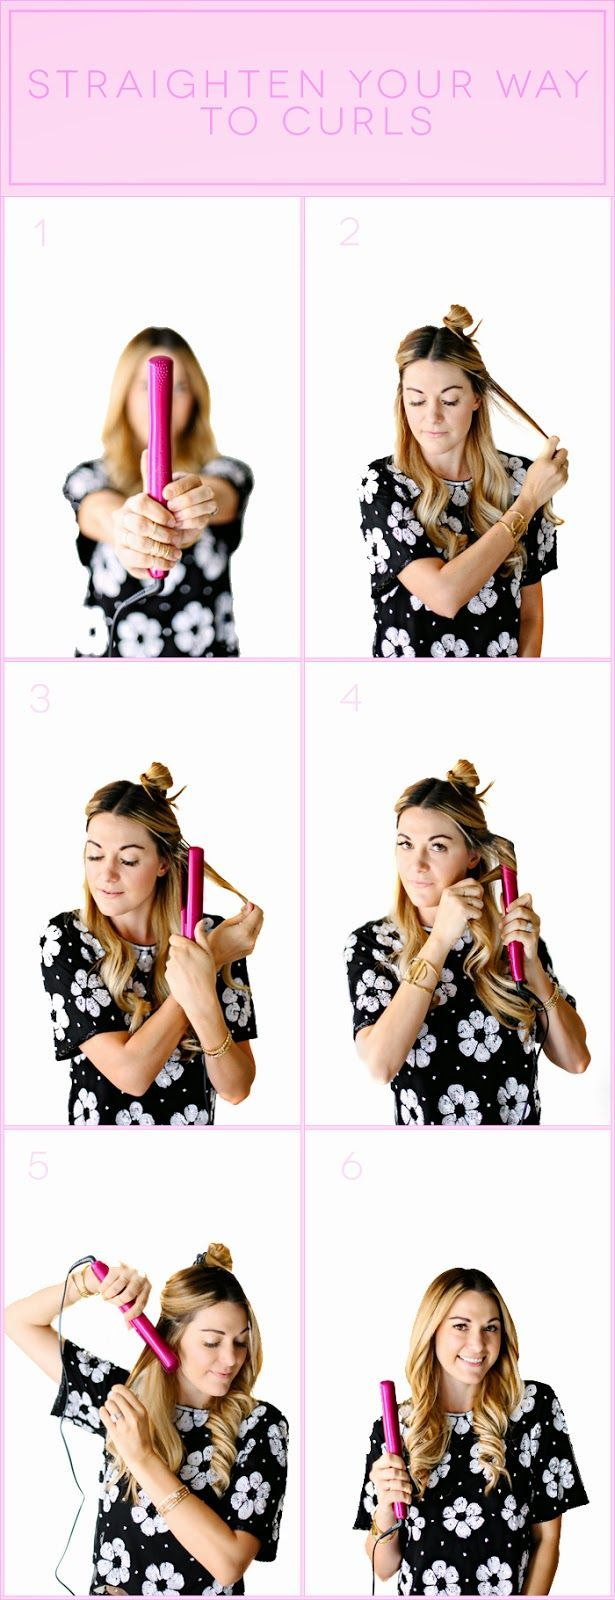 I hope you all had a great weekend. In continuing with my little mini tutorial streak I am apparently on here, I wanted to share with you how to curl your hair with a flat iron. I recently got the n